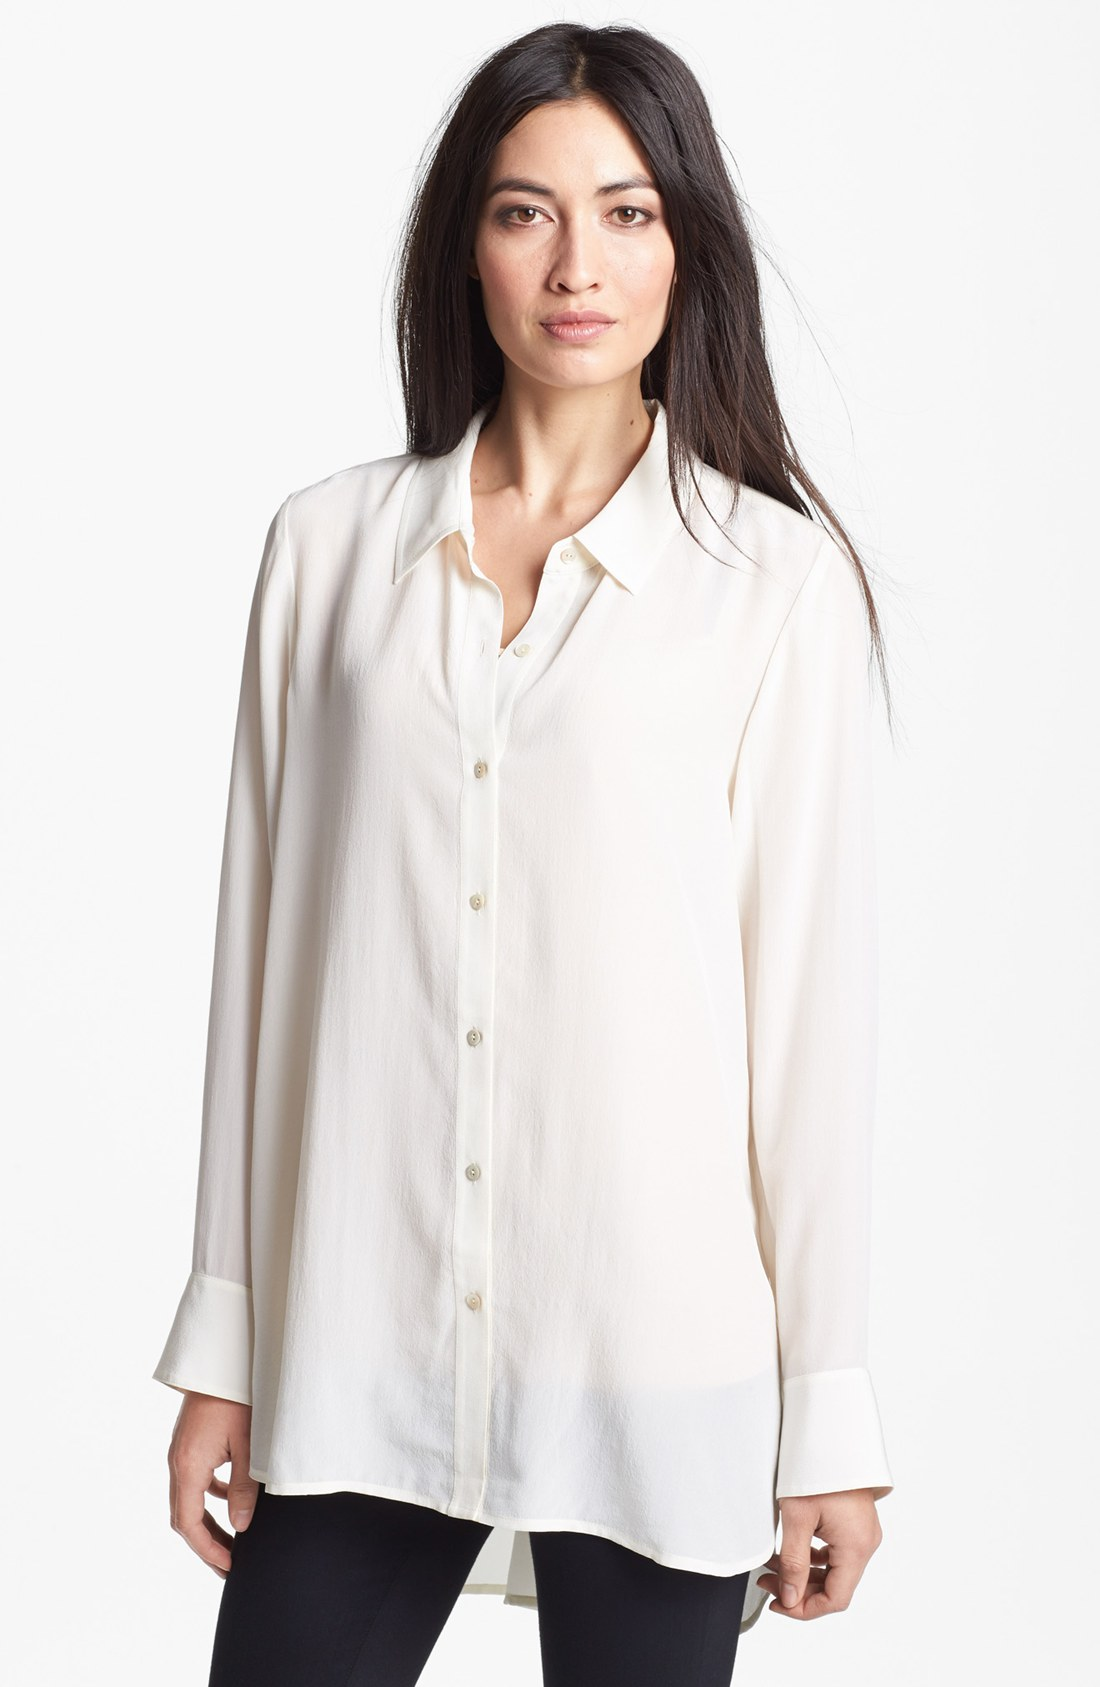 Soft White Shirt | Is Shirt